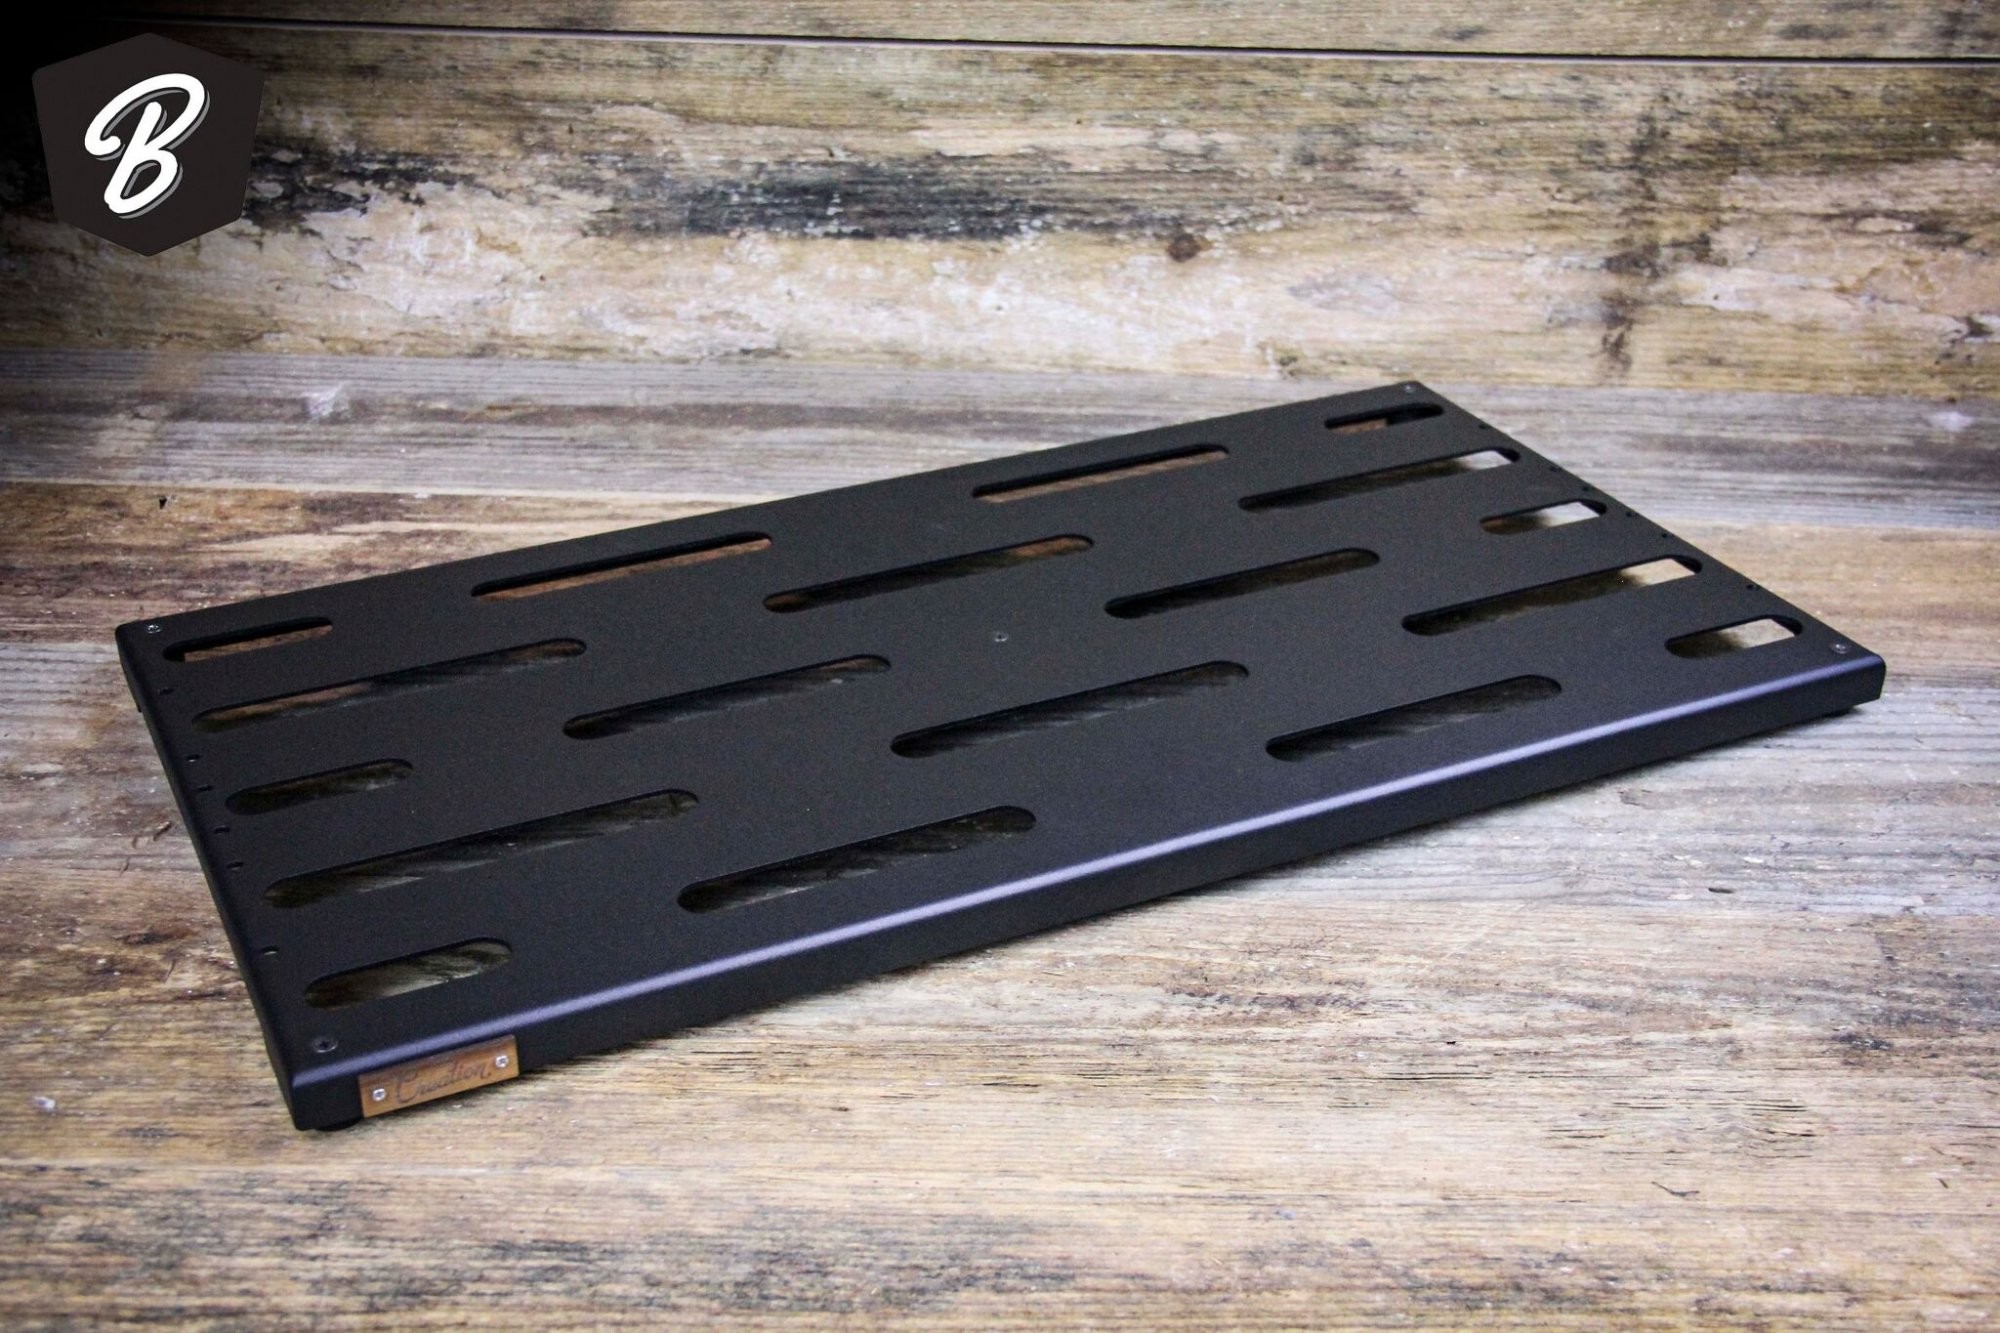 Creation Music Company 24x12.5 Aero Series Pedal Board in Matte Black w/Soft case